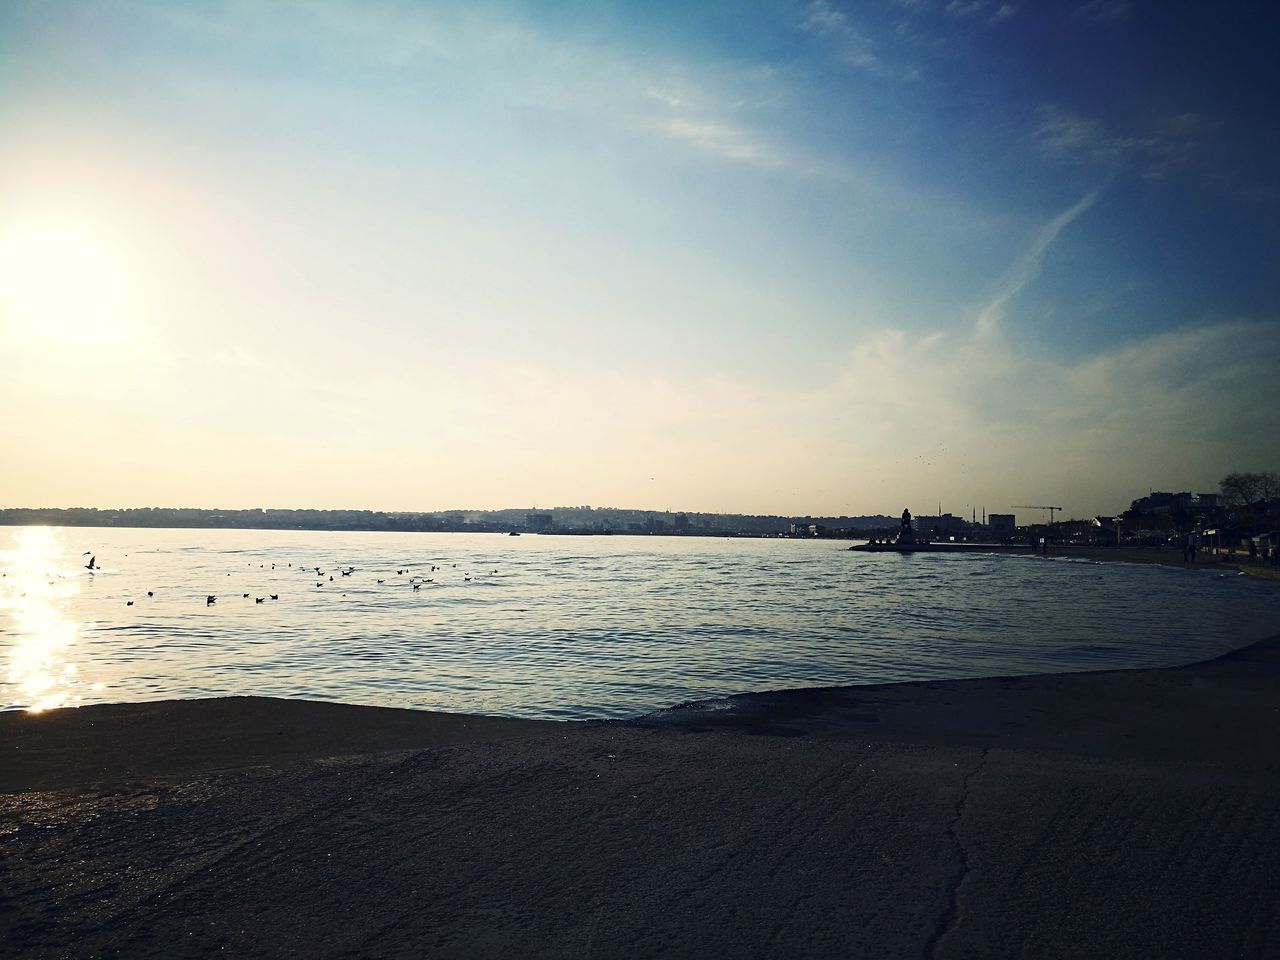 Water Sunset Sky Beach Nature Outdoors Istanbul Turkey BUYUKCEKMECE Horizon Over Water Sea Reflection Tranquility Tranquil Scene Beauty In Nature No People Day